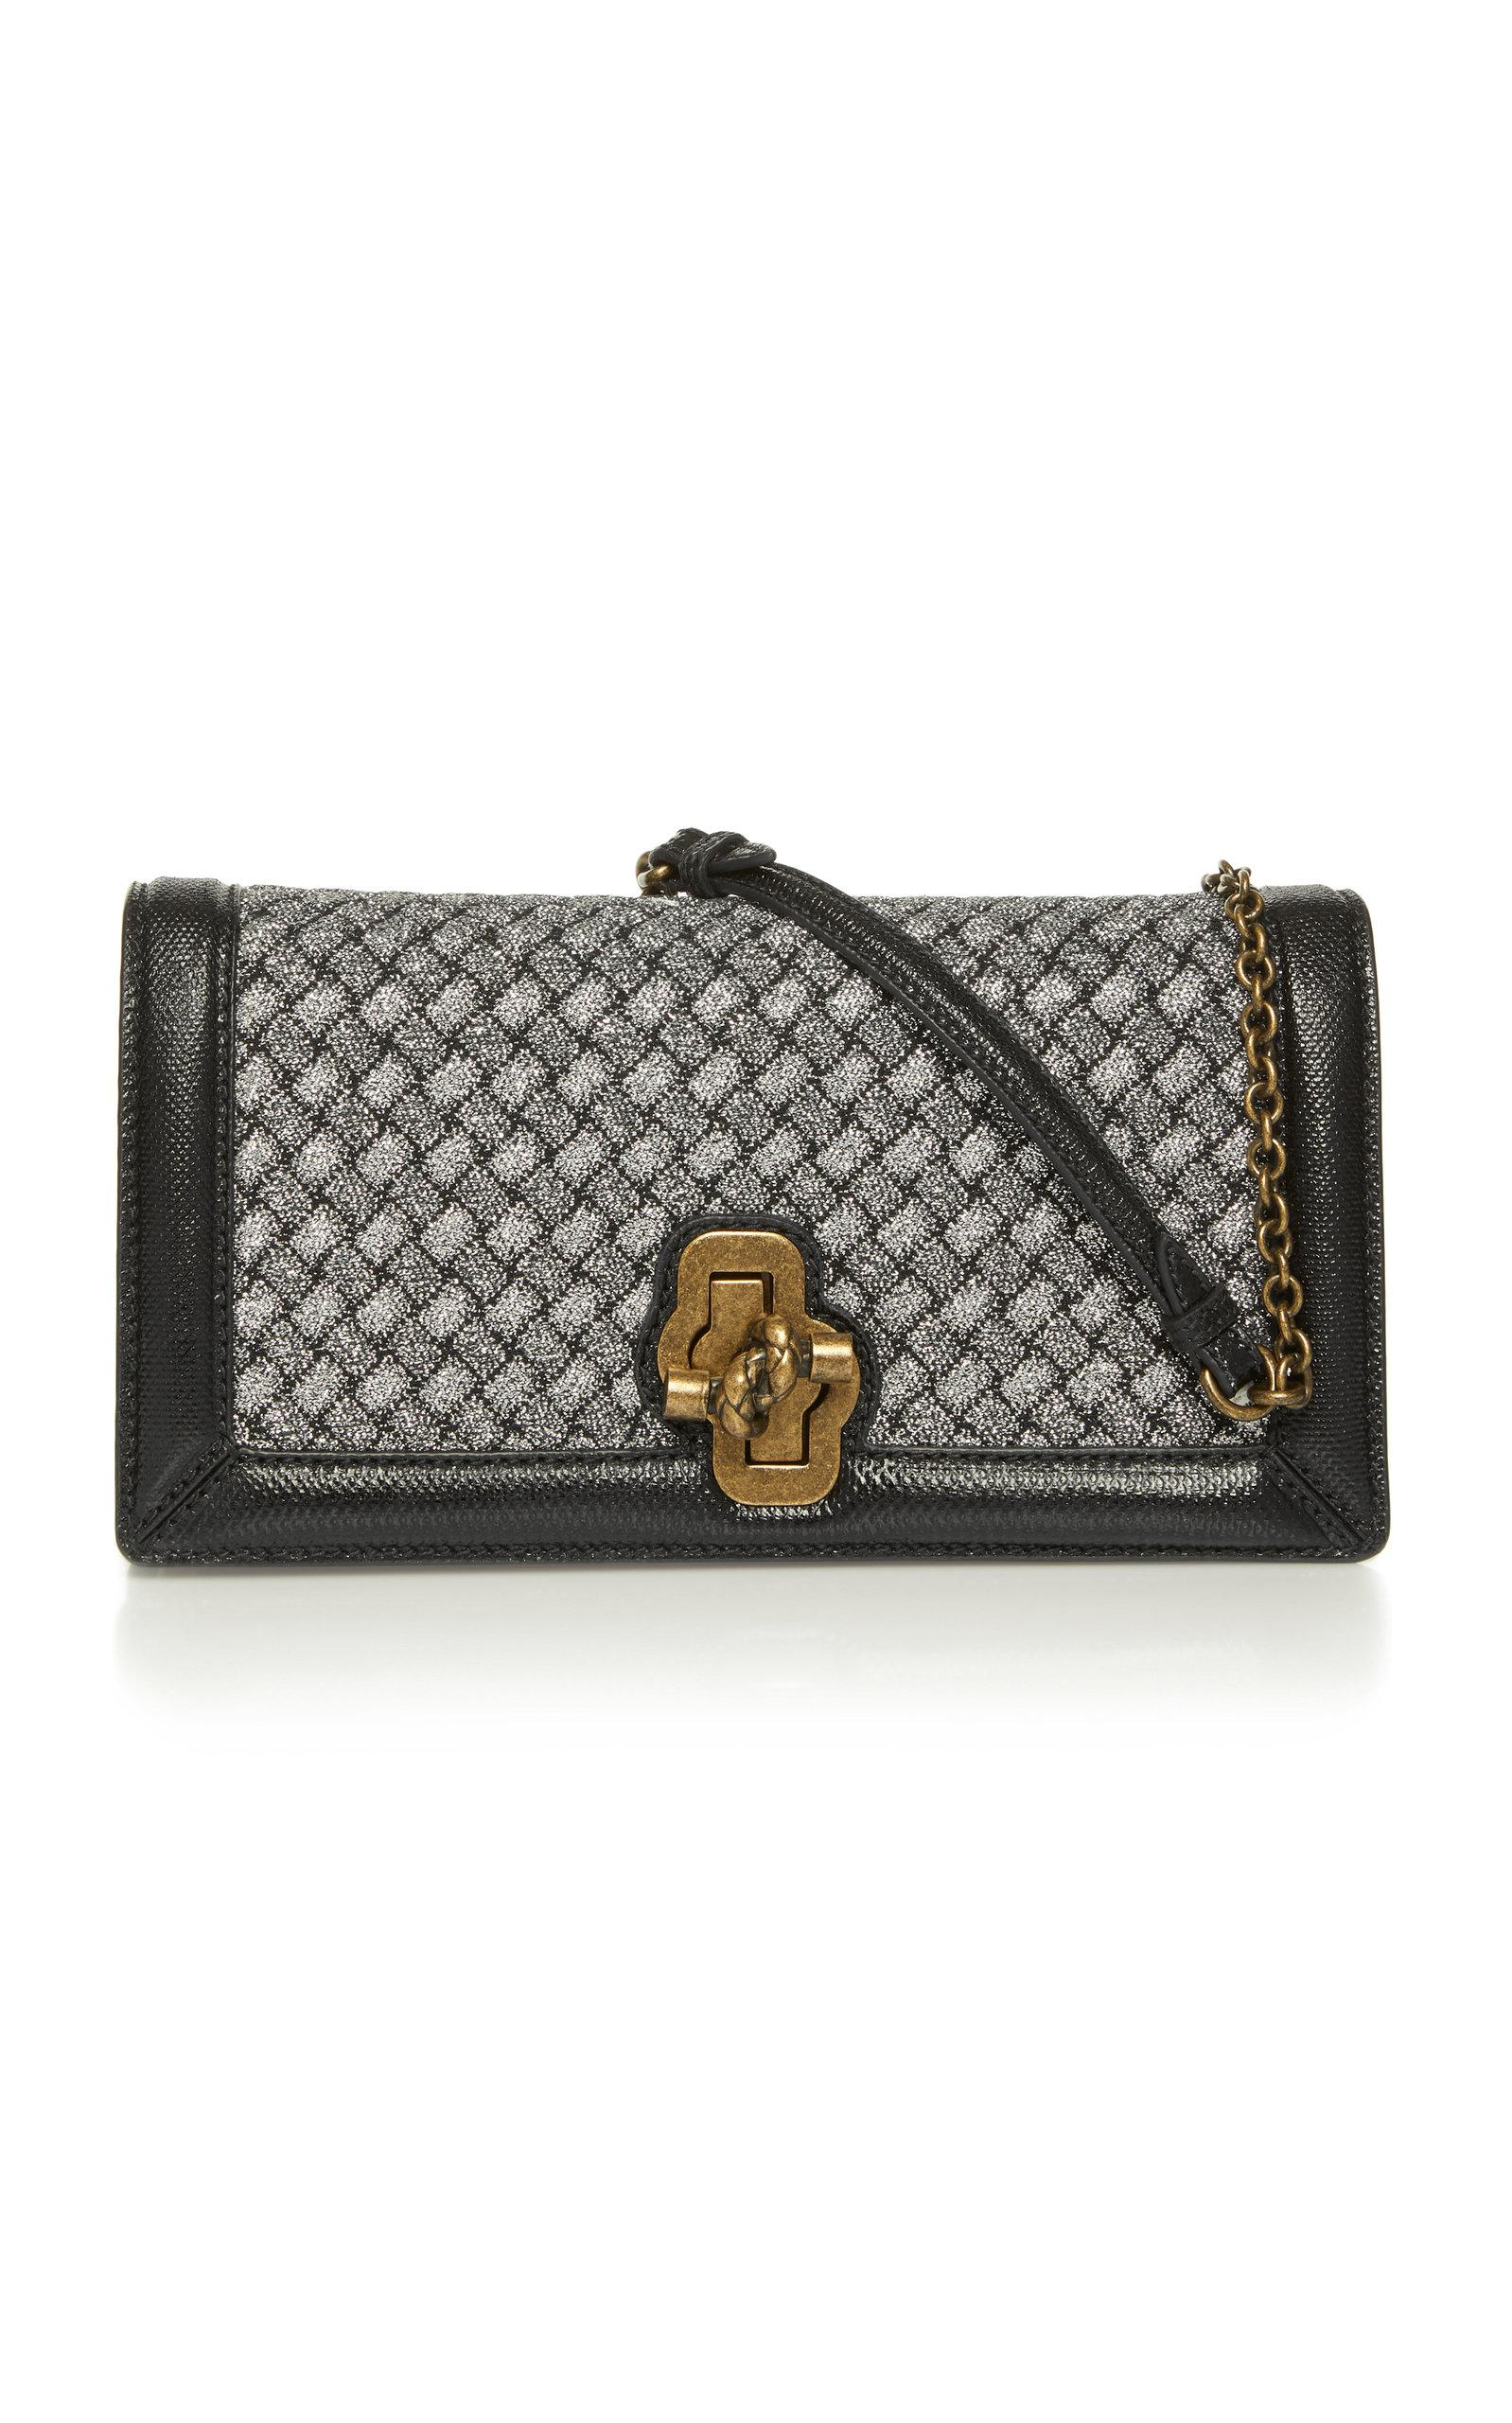 Bottega Veneta Knitted Knot Leather Clutch In Black